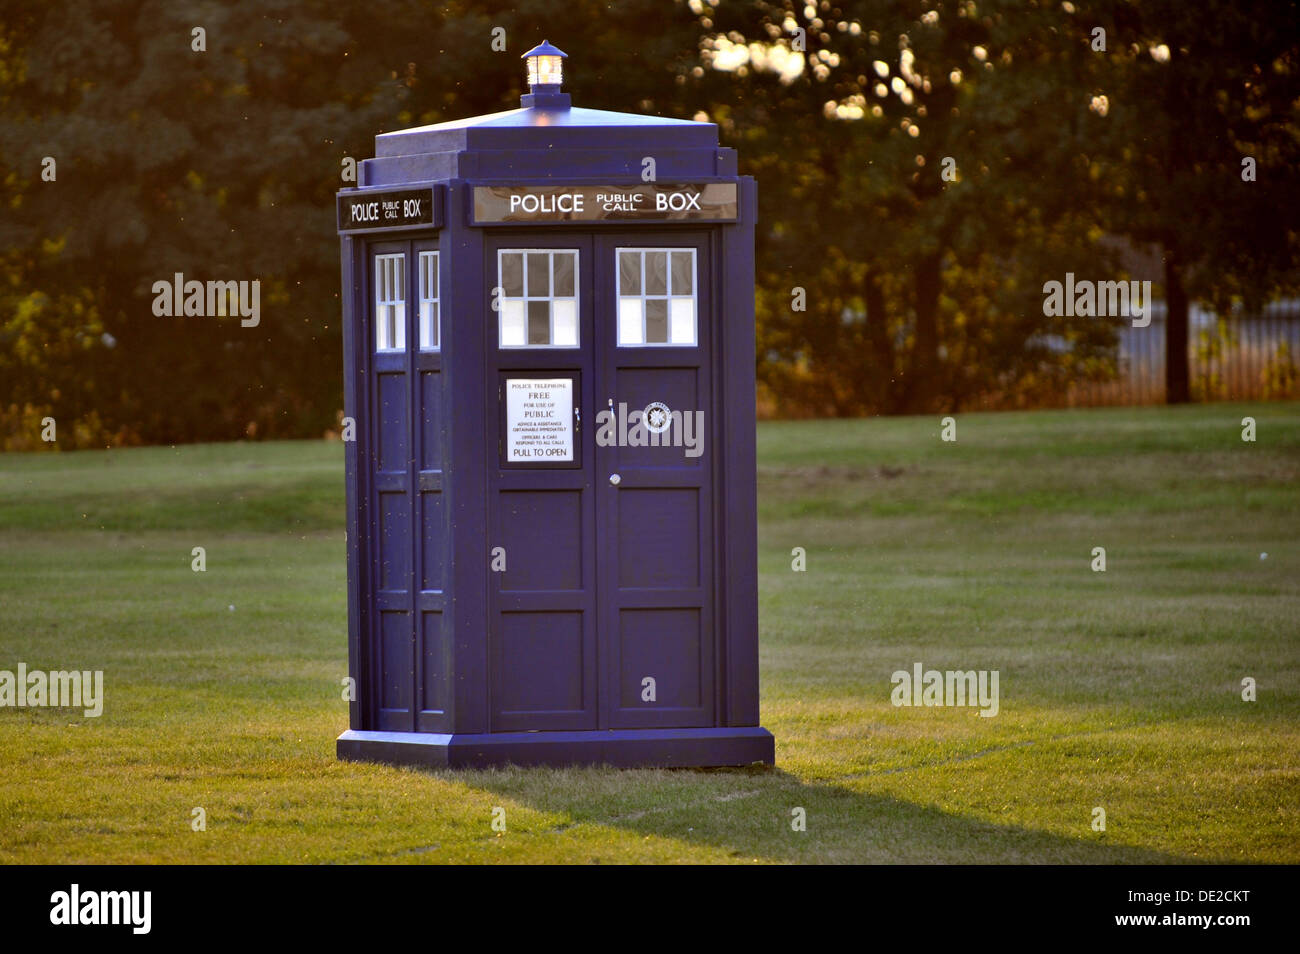 CARDIFF, UK. 10th September 2013. Doctor Who filming the Christmas Special episode on location in Lydstep Park, Gabalfa, Cardiff. Photo shows the TARDIS. Credit:  Polly Thomas / Alamy Live News - Stock Image